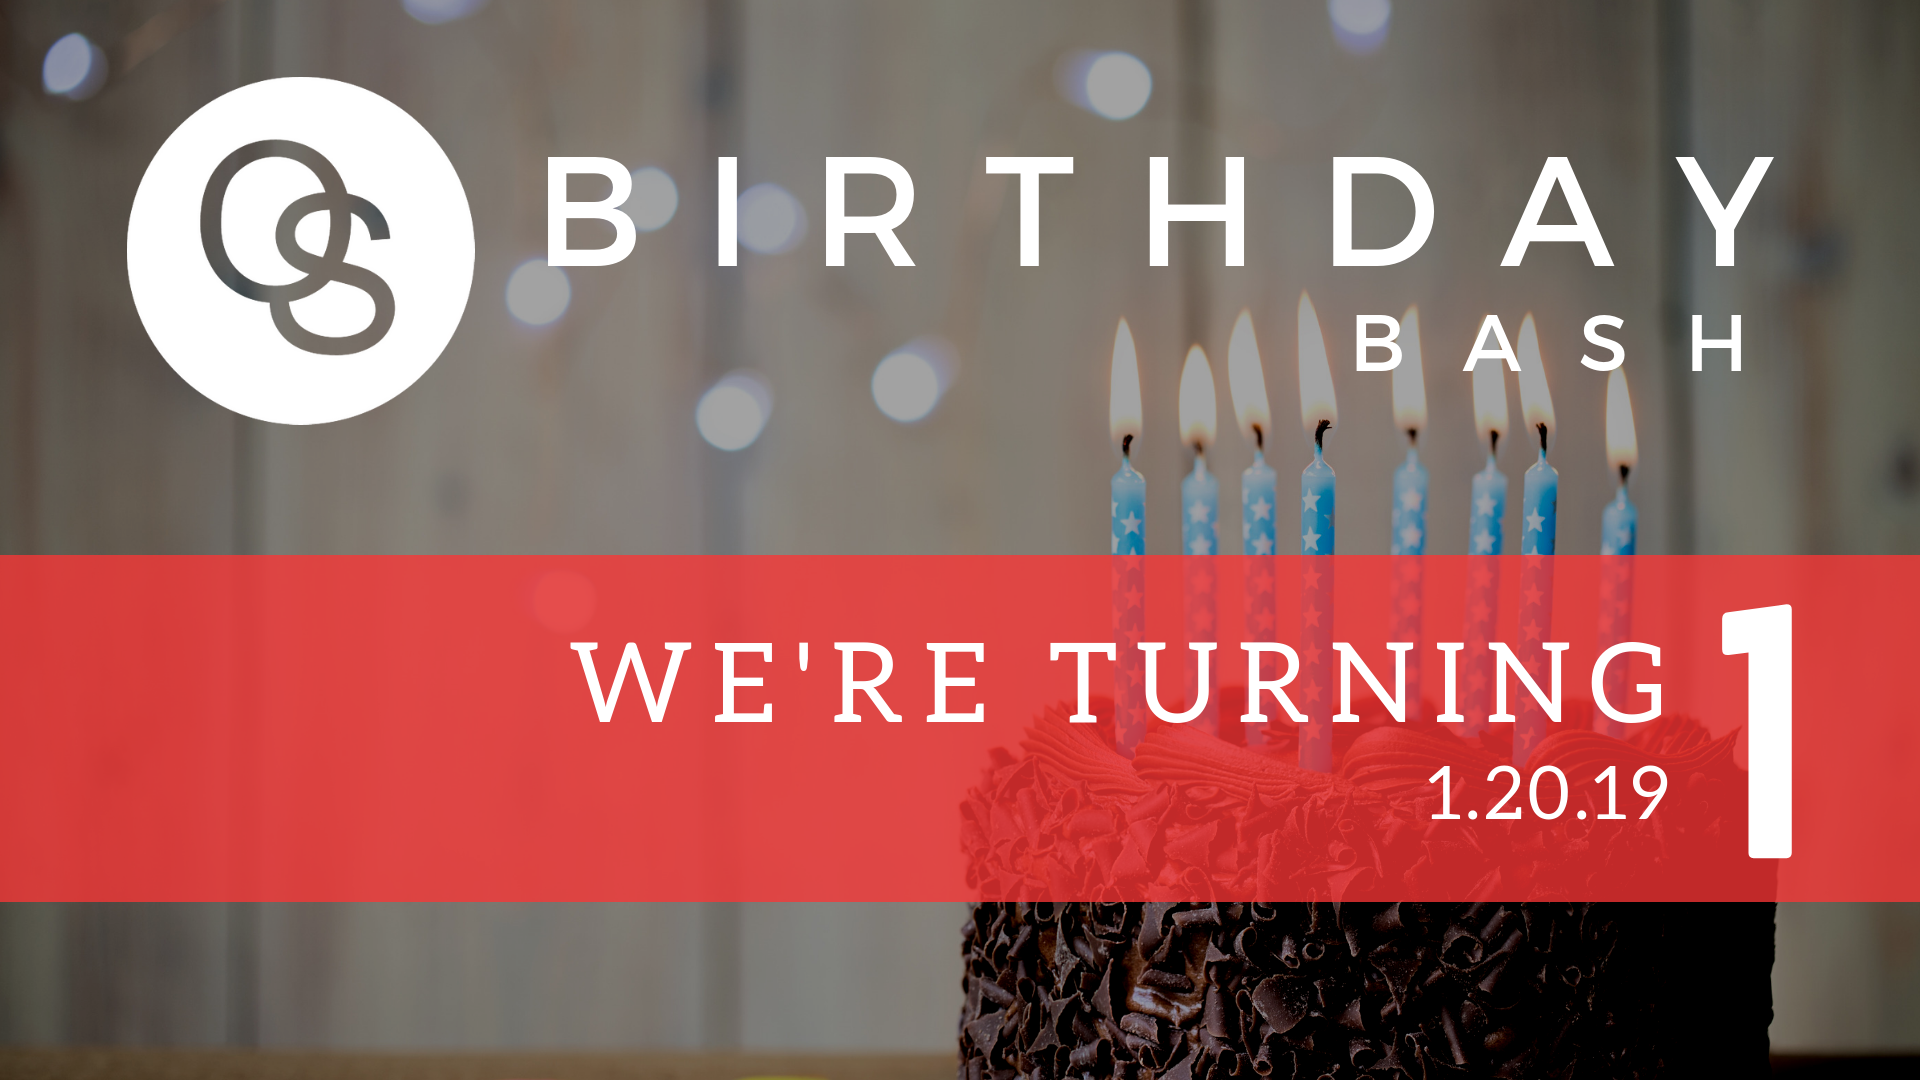 One Seed Church is turning 1 years old! Join us for this special service and continue the birthday celebration in the foyer immediately afterwards. Lunch provided as we meet and greet and blow out the 1 year old birthday candle!